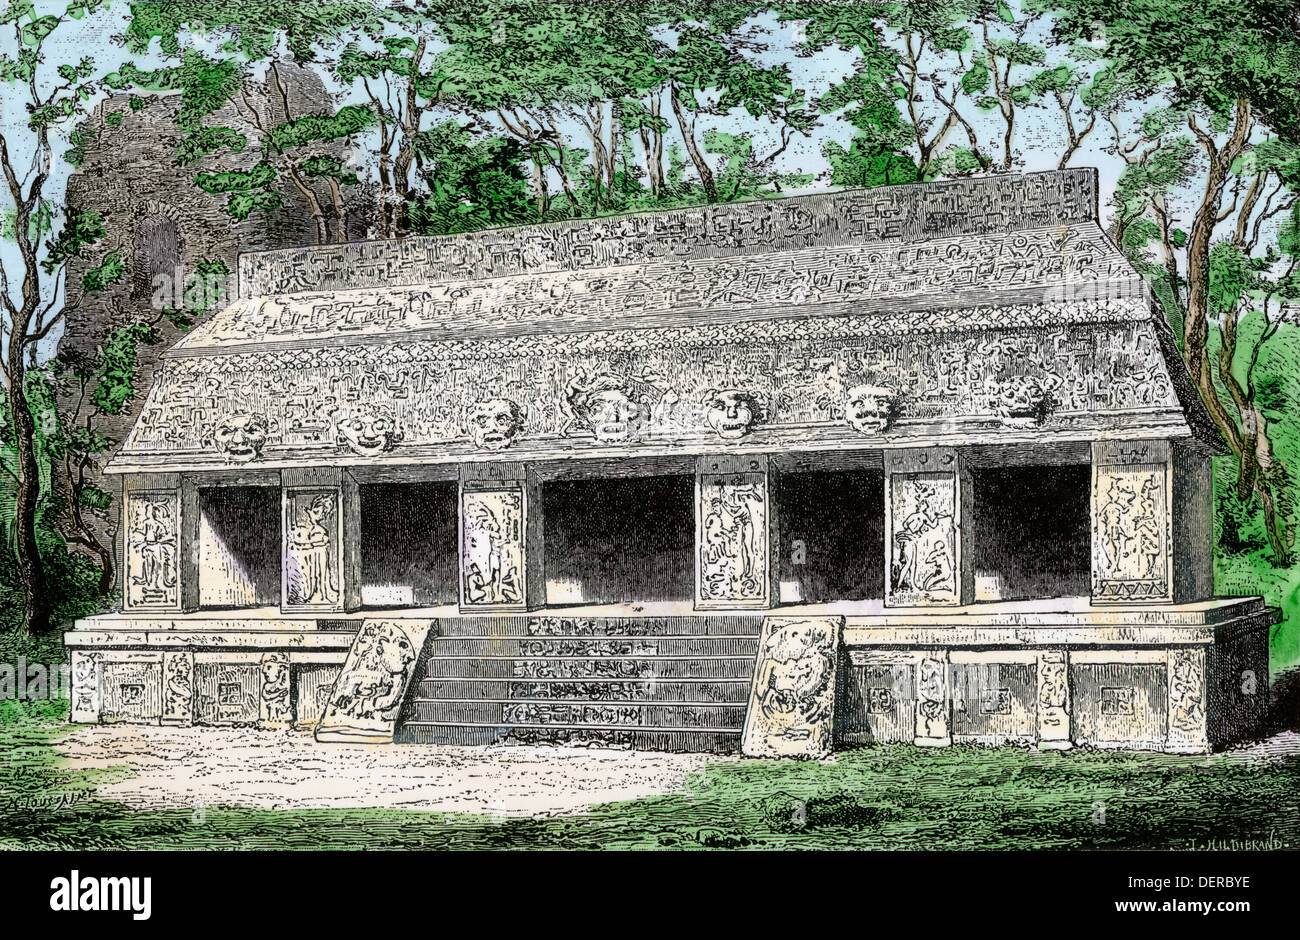 Mayan palace, conjecturally restored, at Palenque, Mexico. Hand-colored woodcut - Stock Image